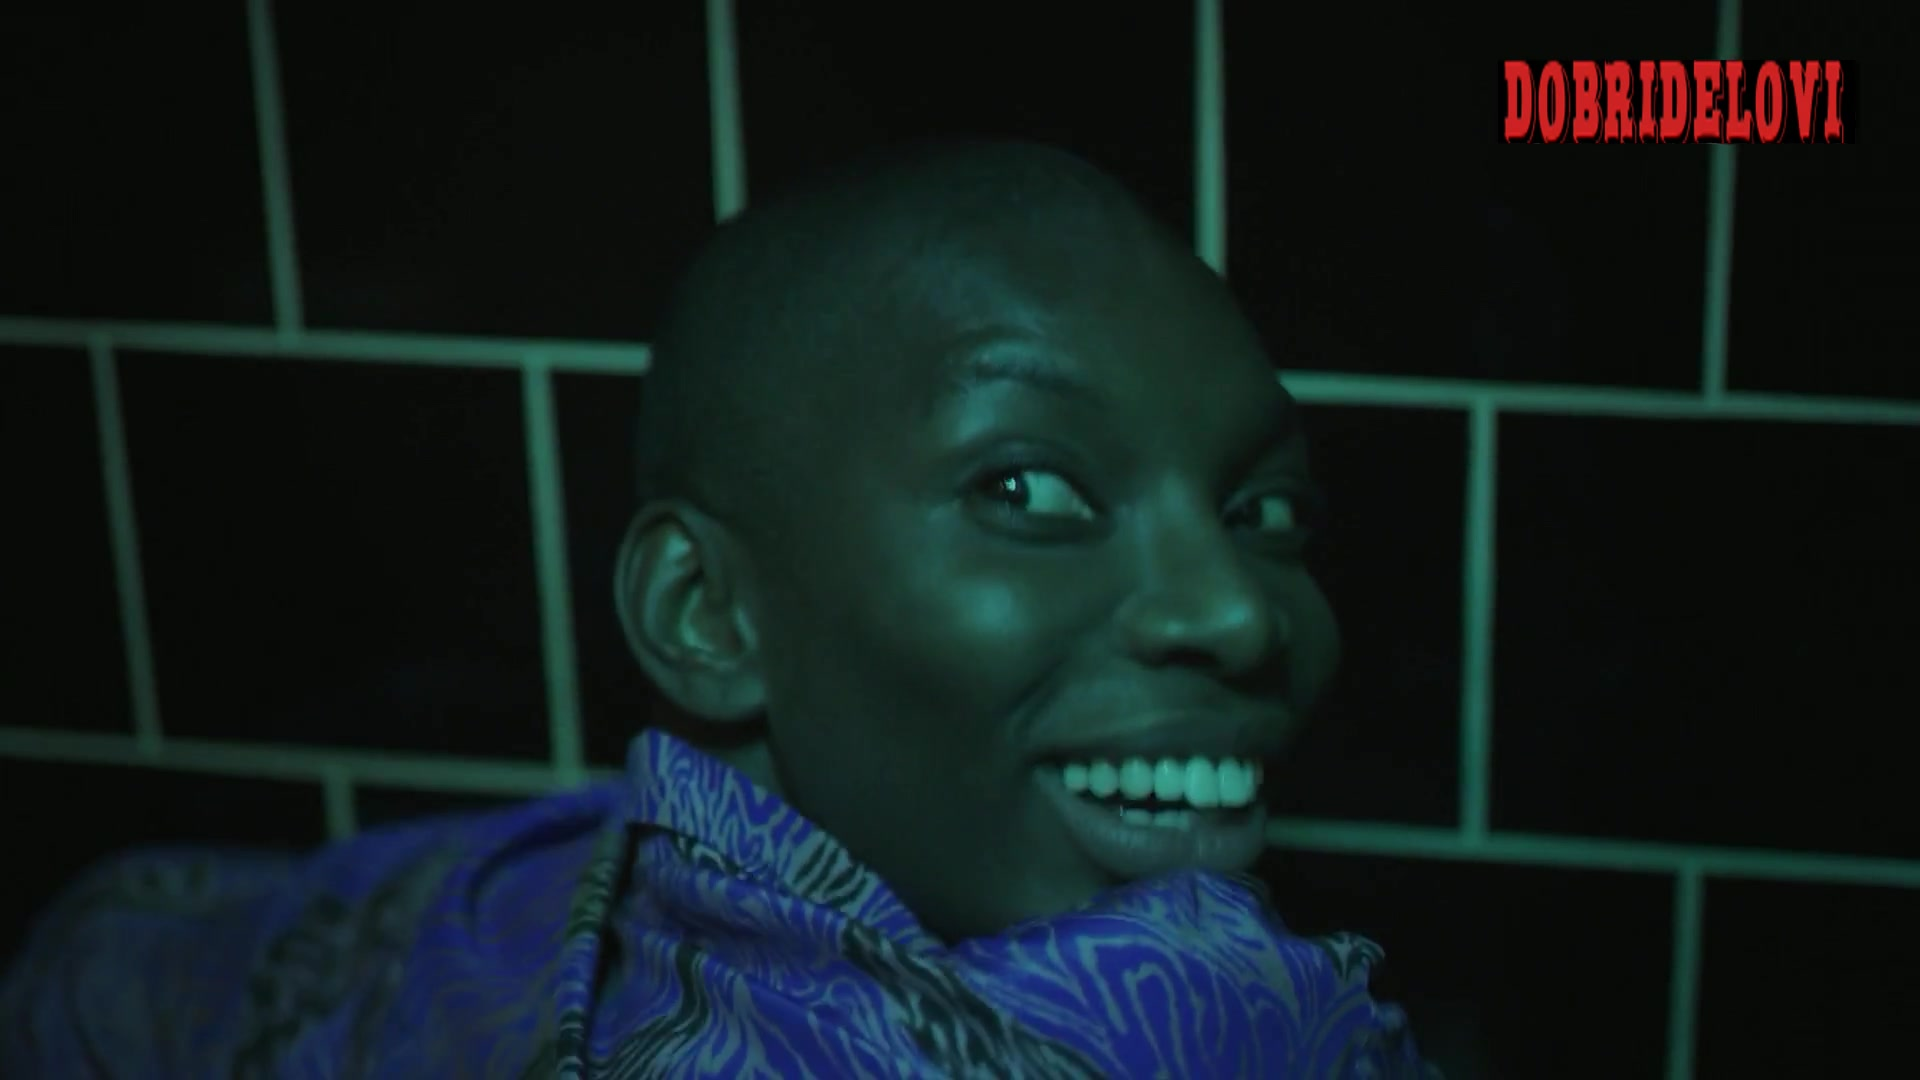 Michaela Coel passed out gets bent in bathroom stall scene from I May Destroy You